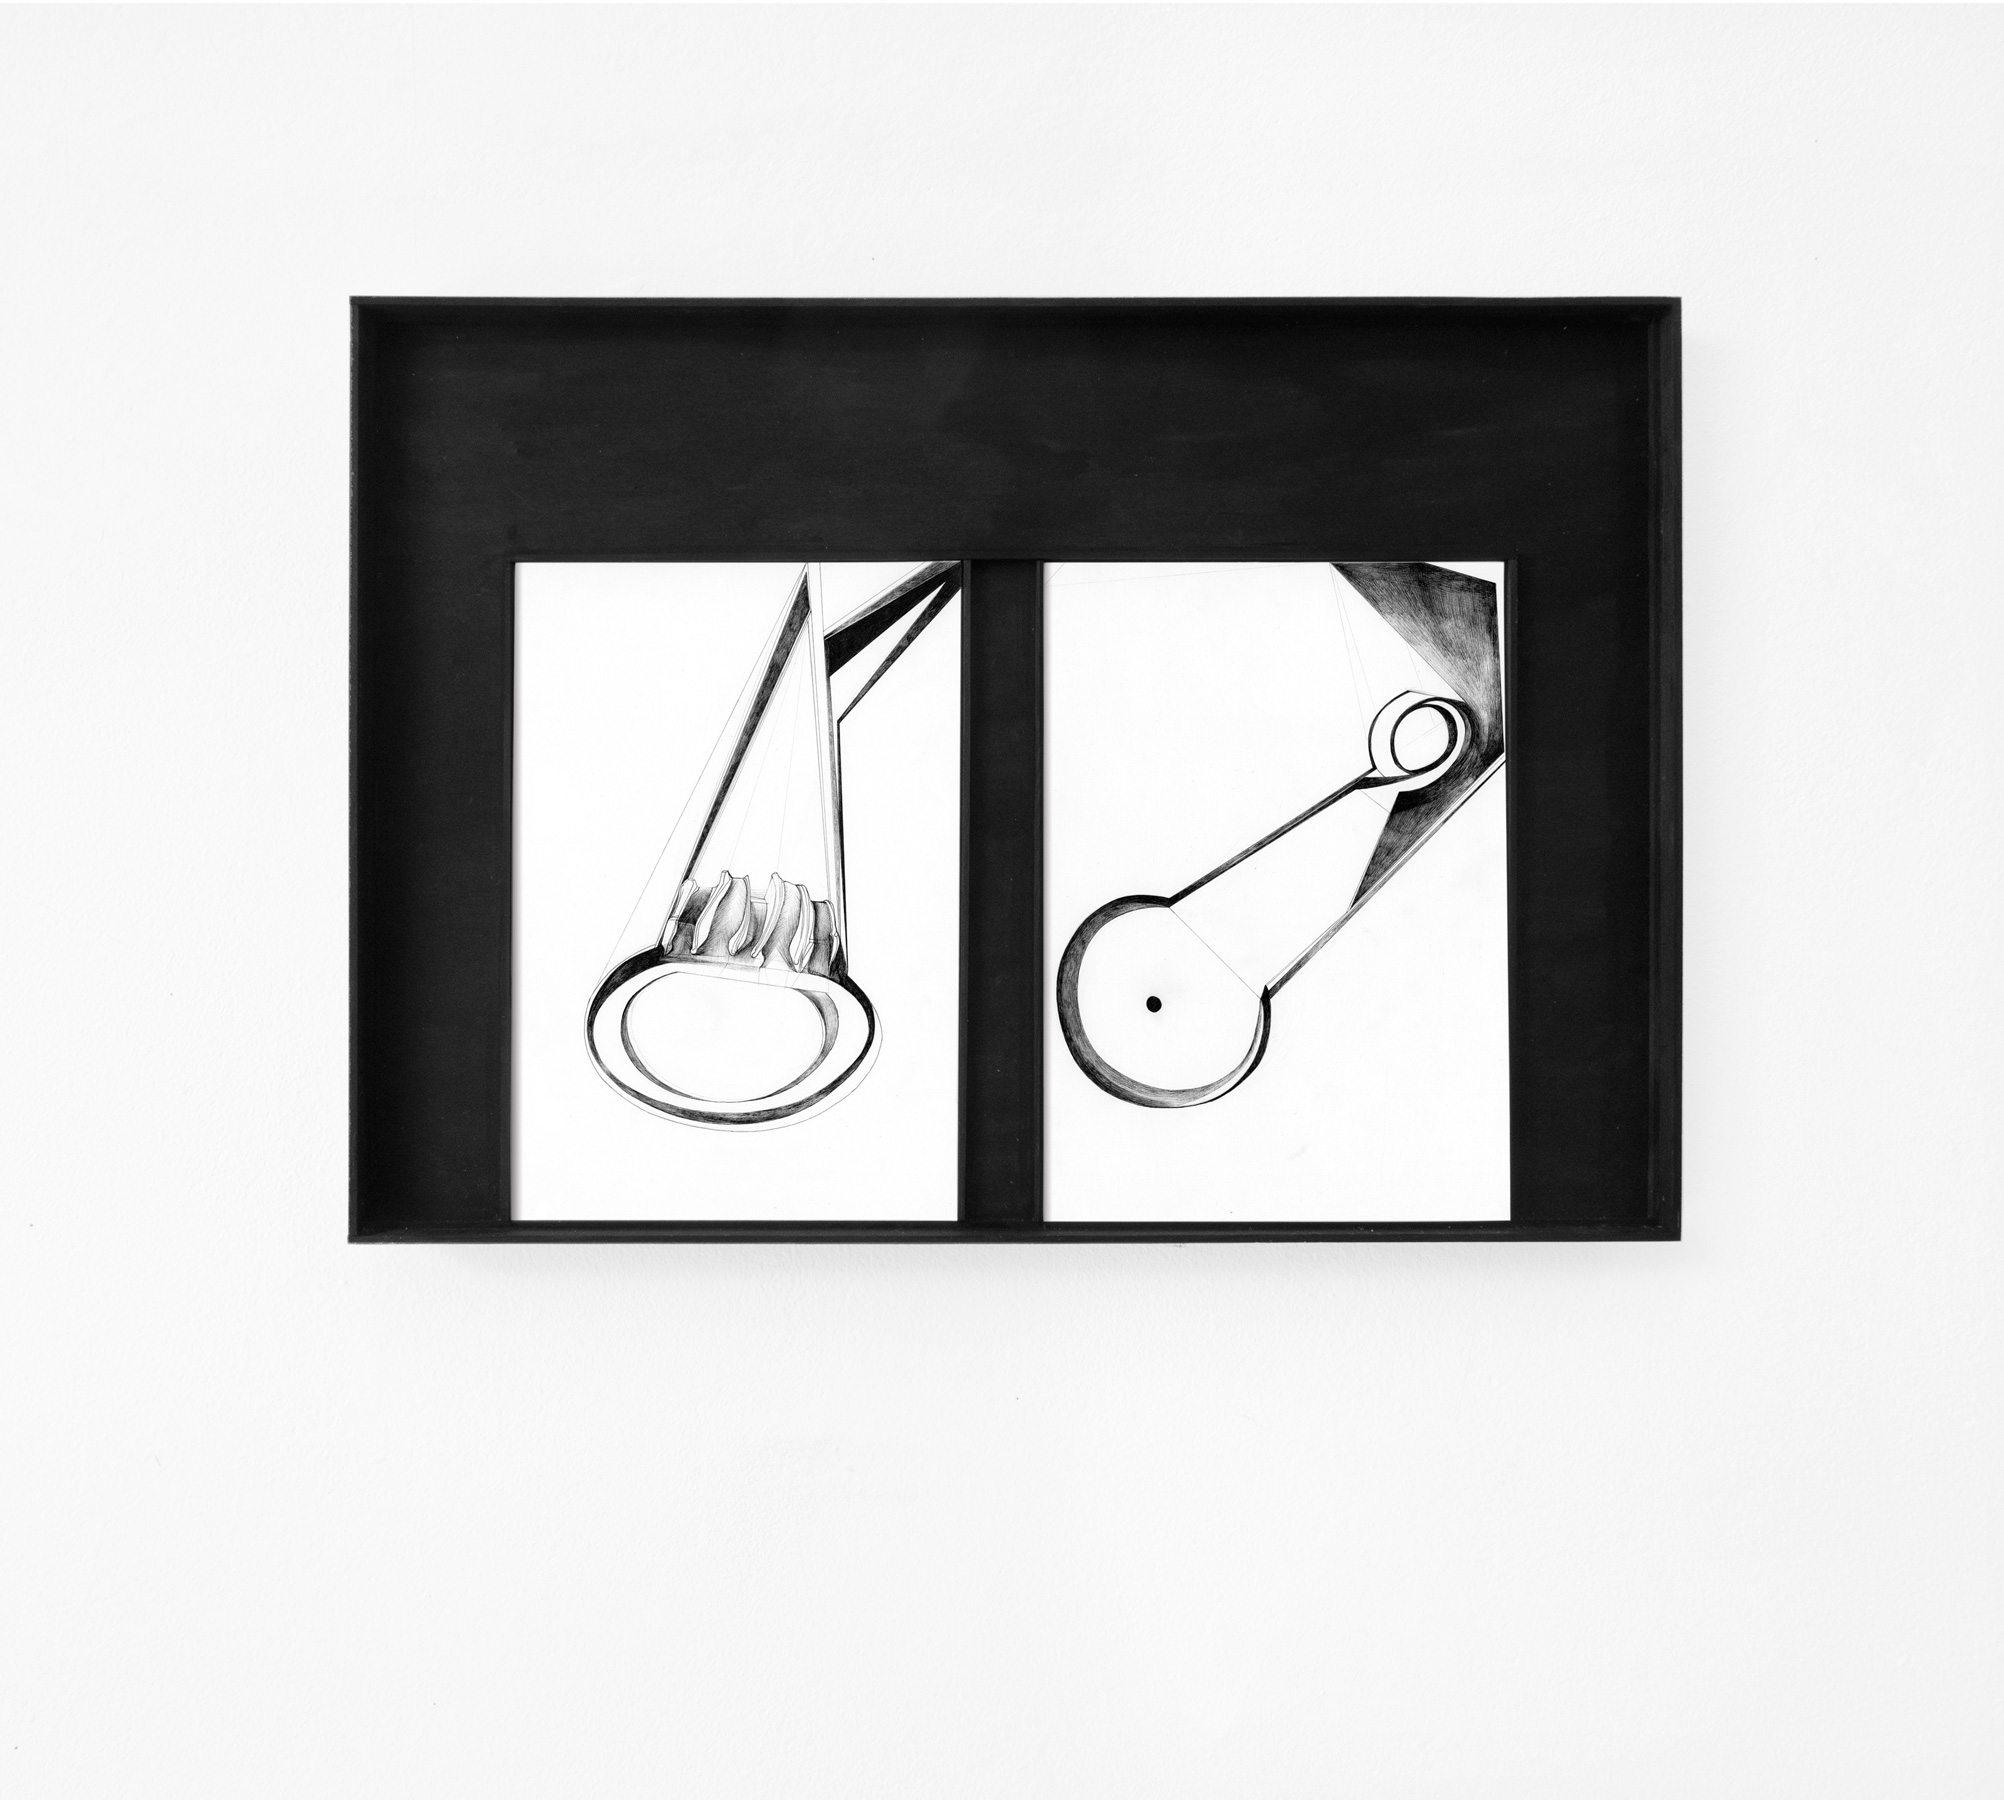 Nina Annabelle Märkl | Scapes 2 | Ink on paper, cutouts, wood | 40 x 60 cm | 2014